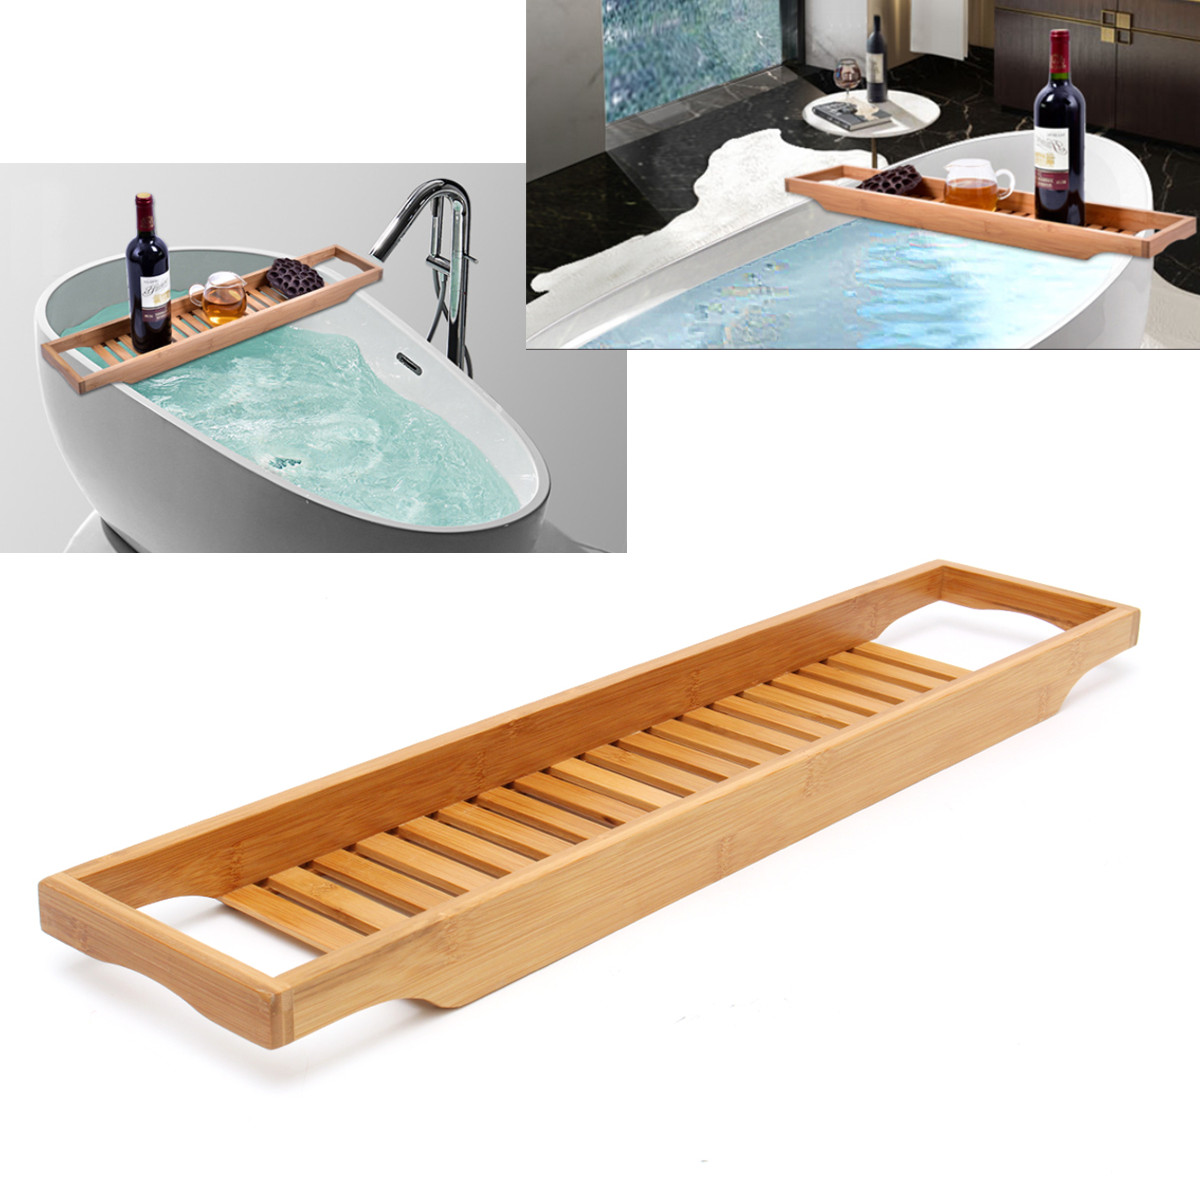 Etonnant Luxury Bathroom Bamboo Bathtub Rack Support Bath Shelf Bath Tray Bathtub  Holder Bridge Tub Caddy Tray Rack Wine Holder